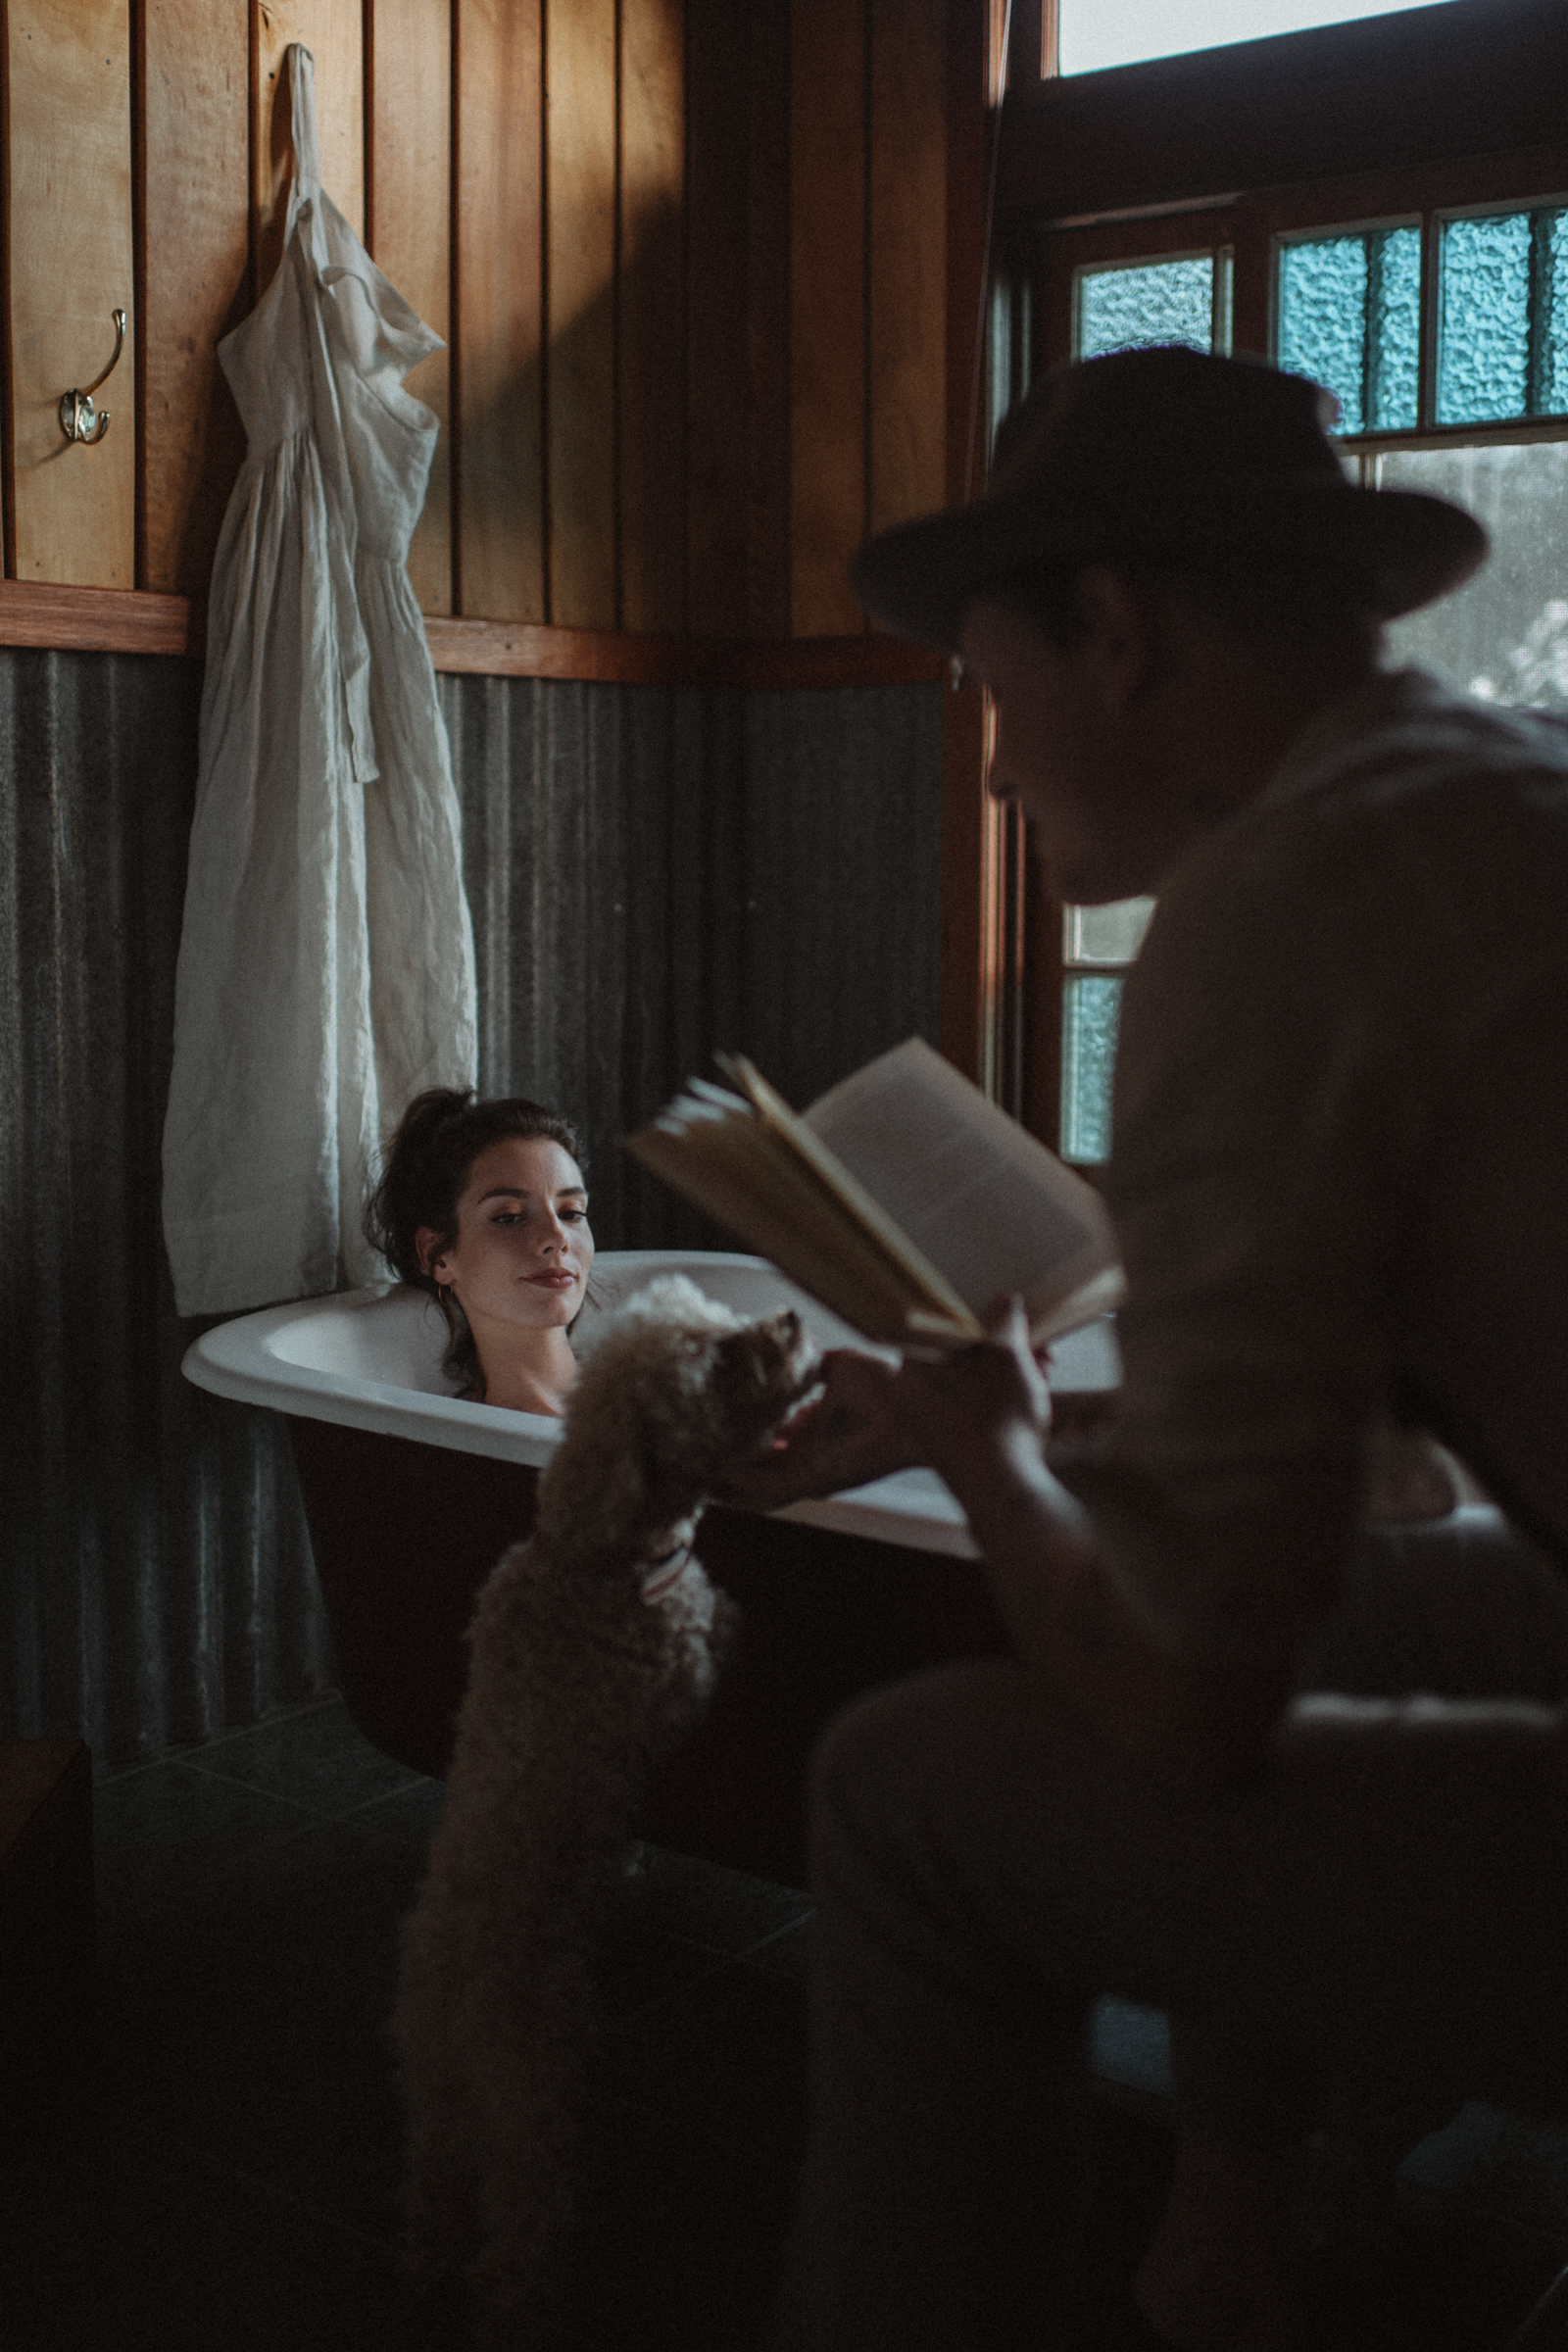 groom-reads-to-bride-in-bath-ben-sowry-photo